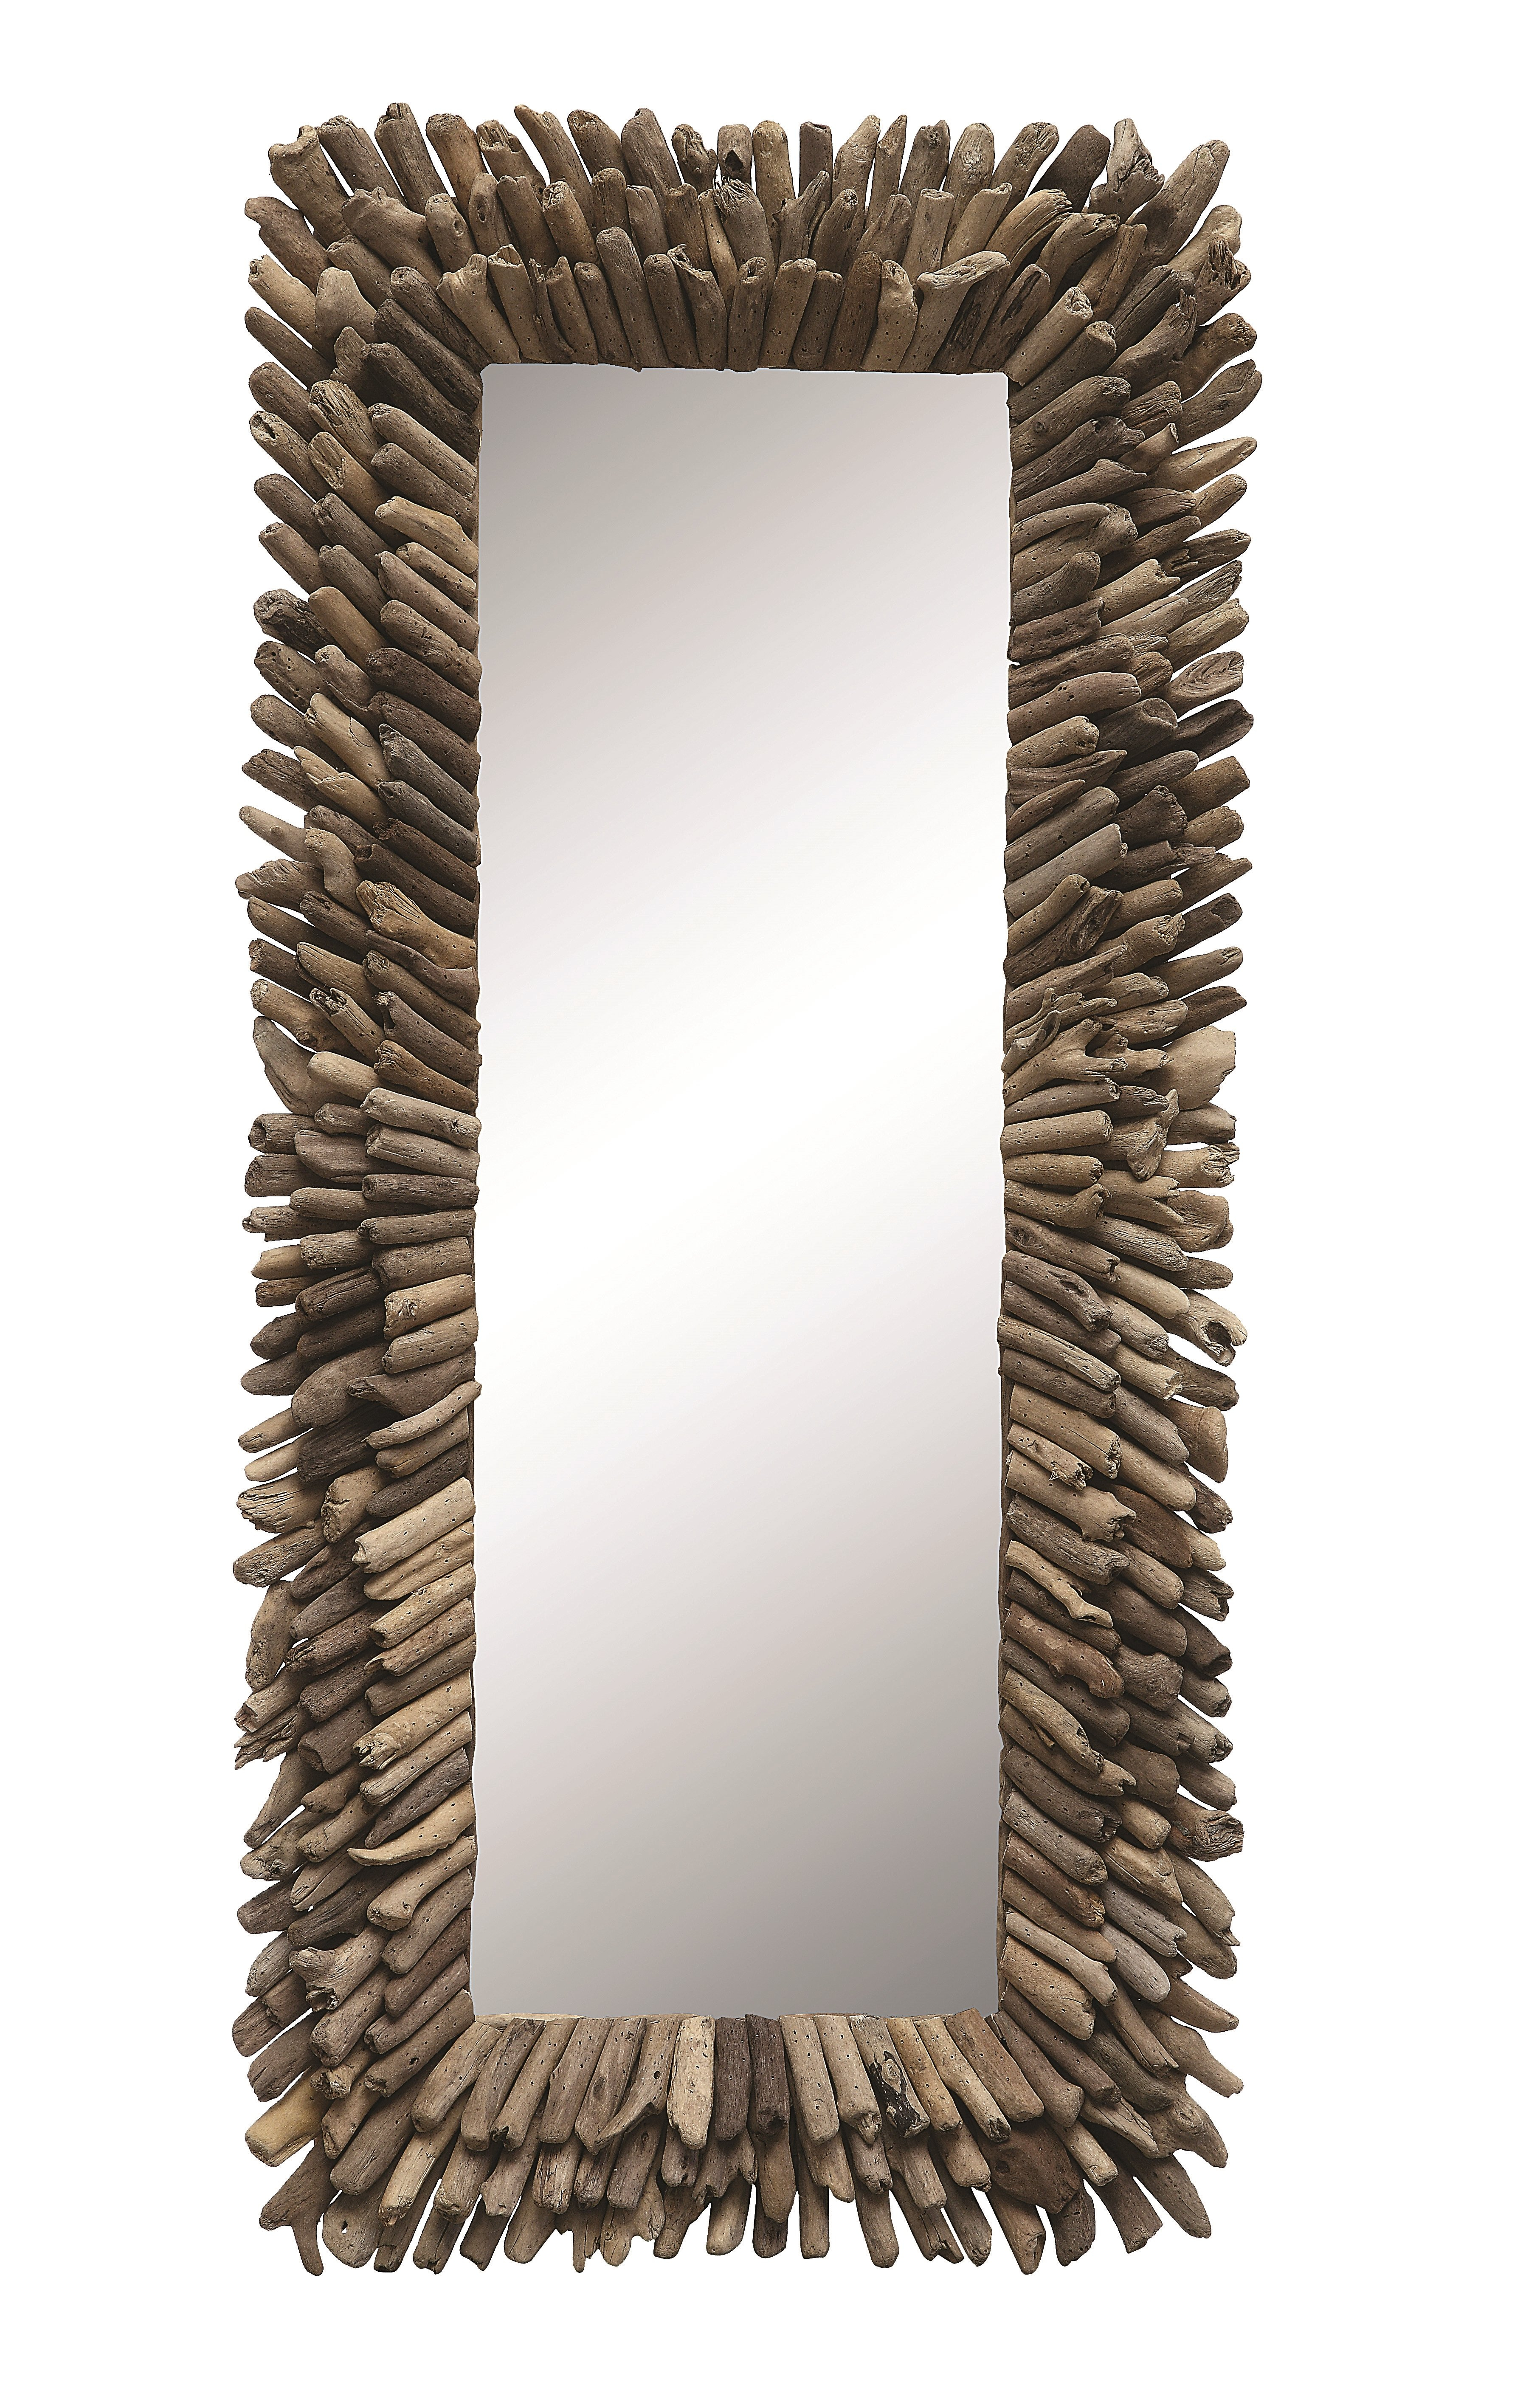 Kellett Accent Mirror intended for Josephson Starburst Glam Beveled Accent Wall Mirrors (Image 13 of 22)